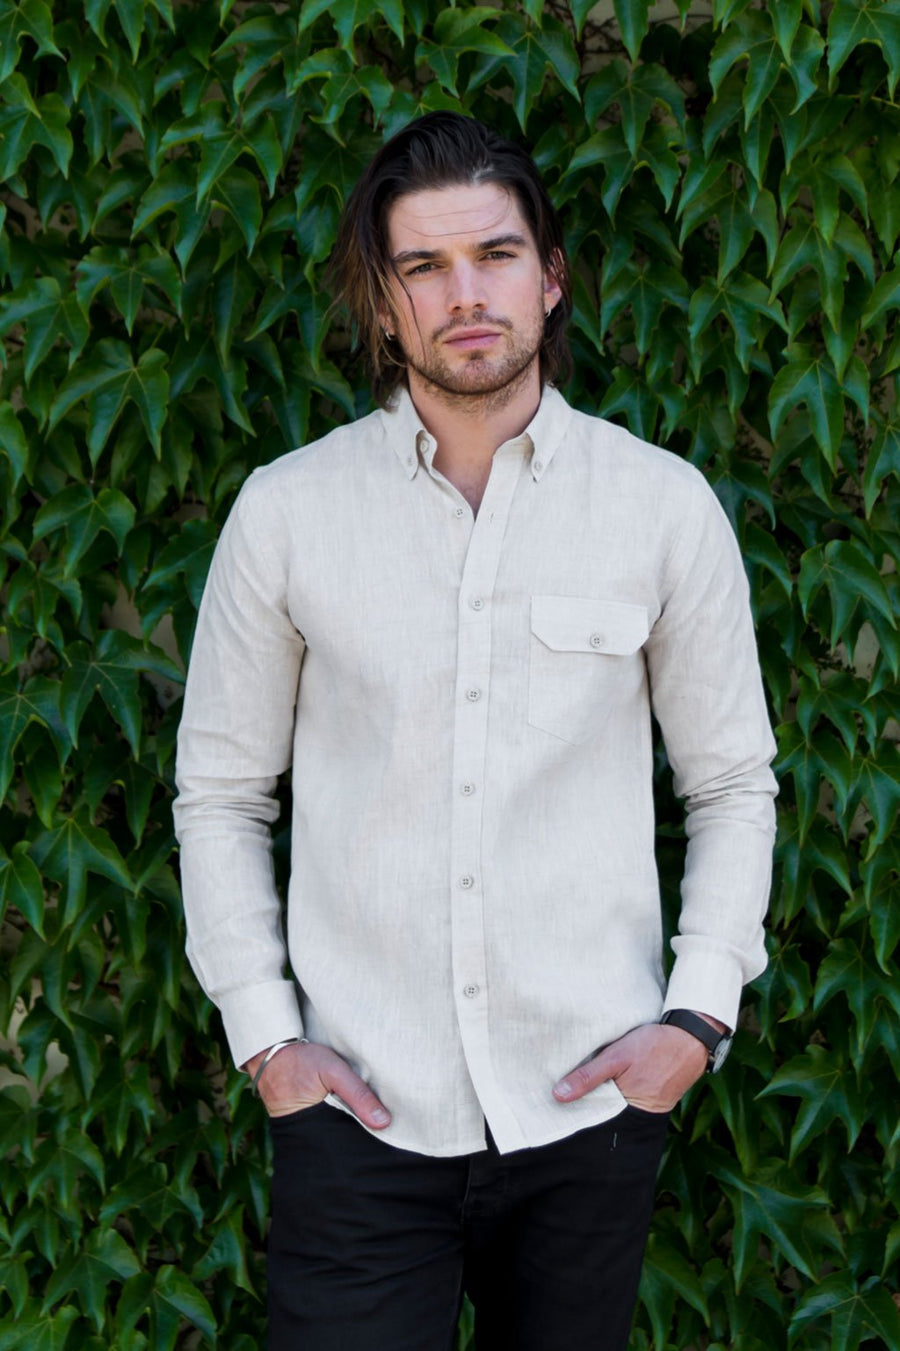 Sample of Long Sleeve Oxford Shirt in Natural Hemp